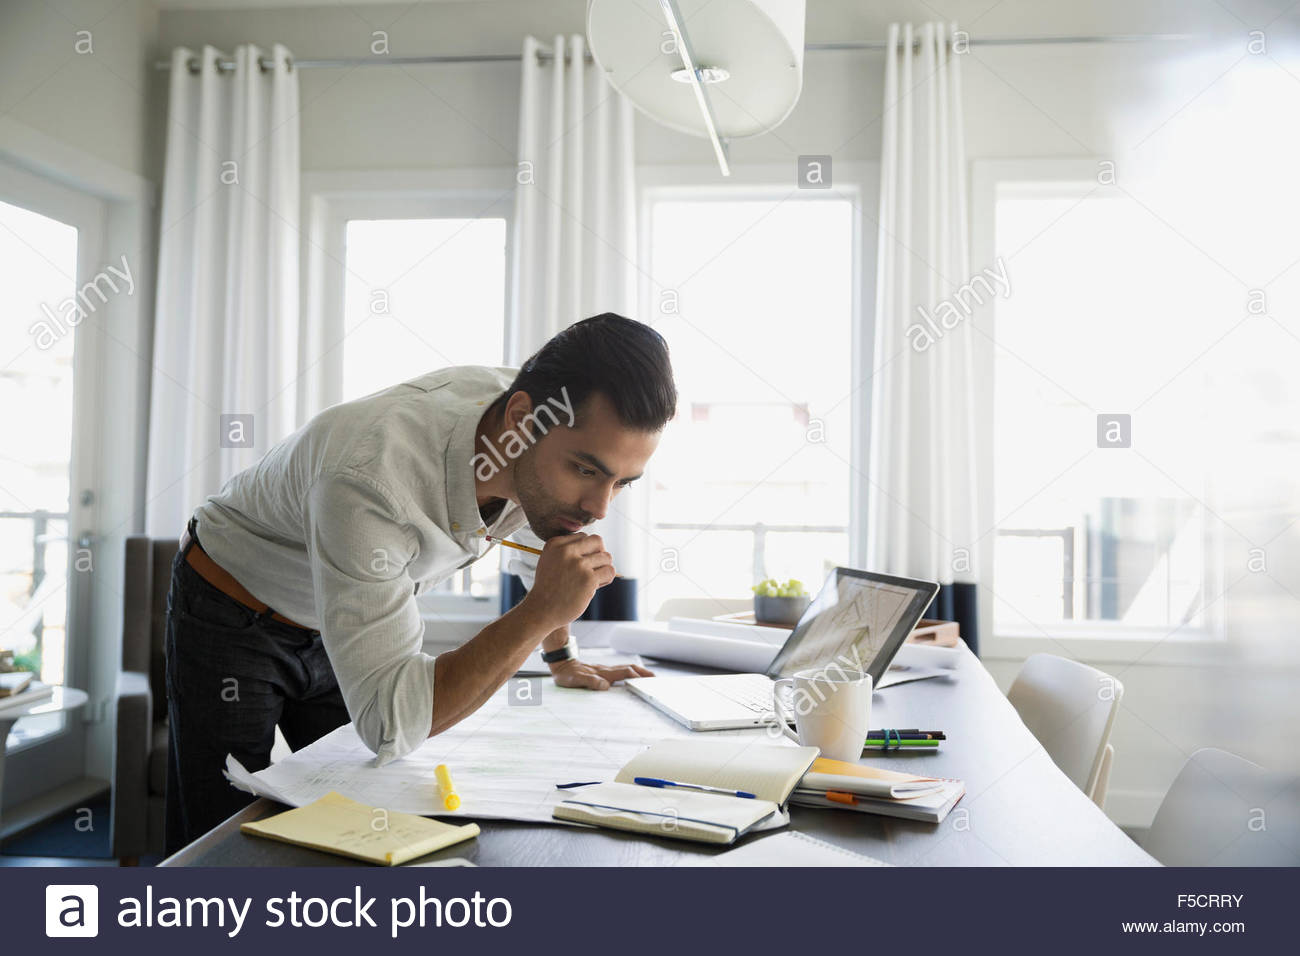 Focused architect working at dining table - Stock Image